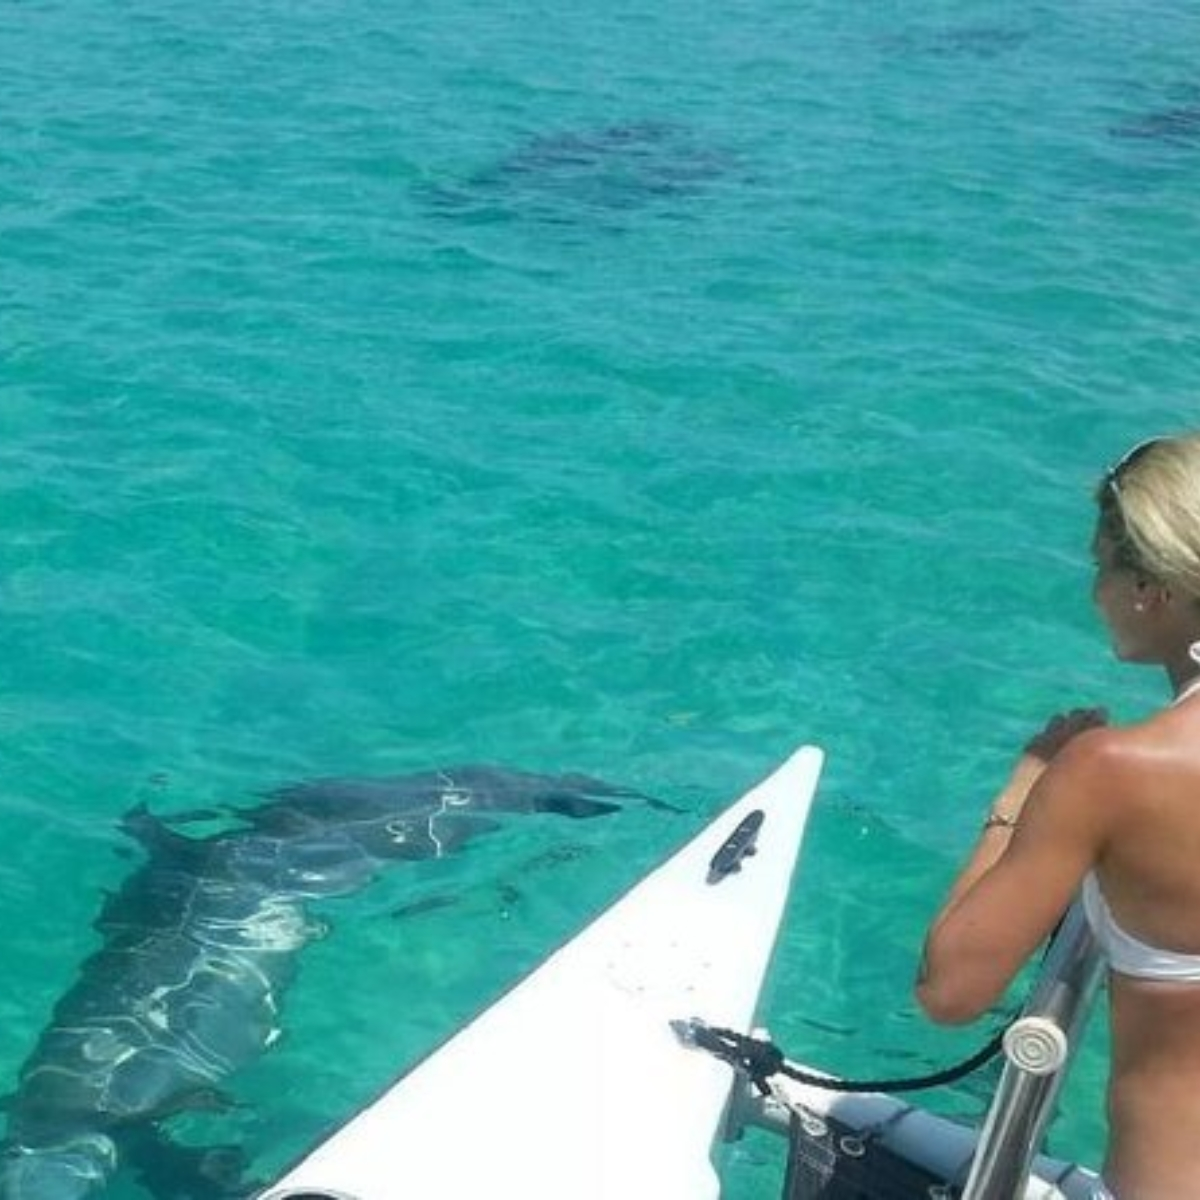 Shipwreck Snorkel and Wild Dolphin Encounter Images